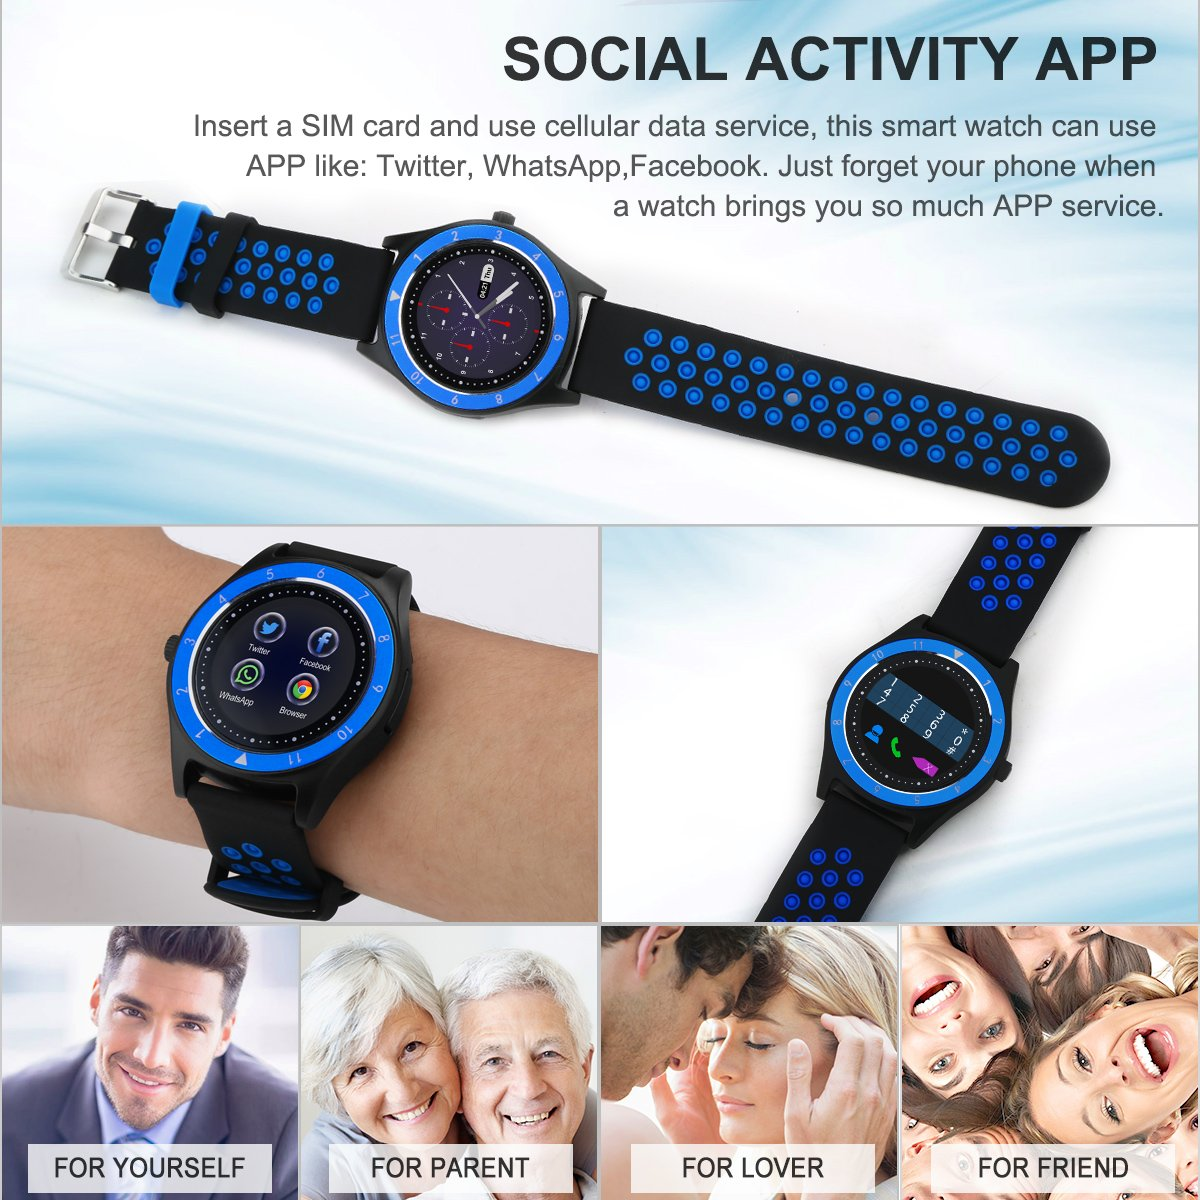 Smart Watch,Bluetooth Smartwatch Touch Screen Wrist Watch with Camera/SIM Card Slot,Waterproof Phone Smart Watch Sports Fitness Tracker for Android iPhone IOS Phones Samsung Huawei for Kids Women Men by Topffy (Image #3)